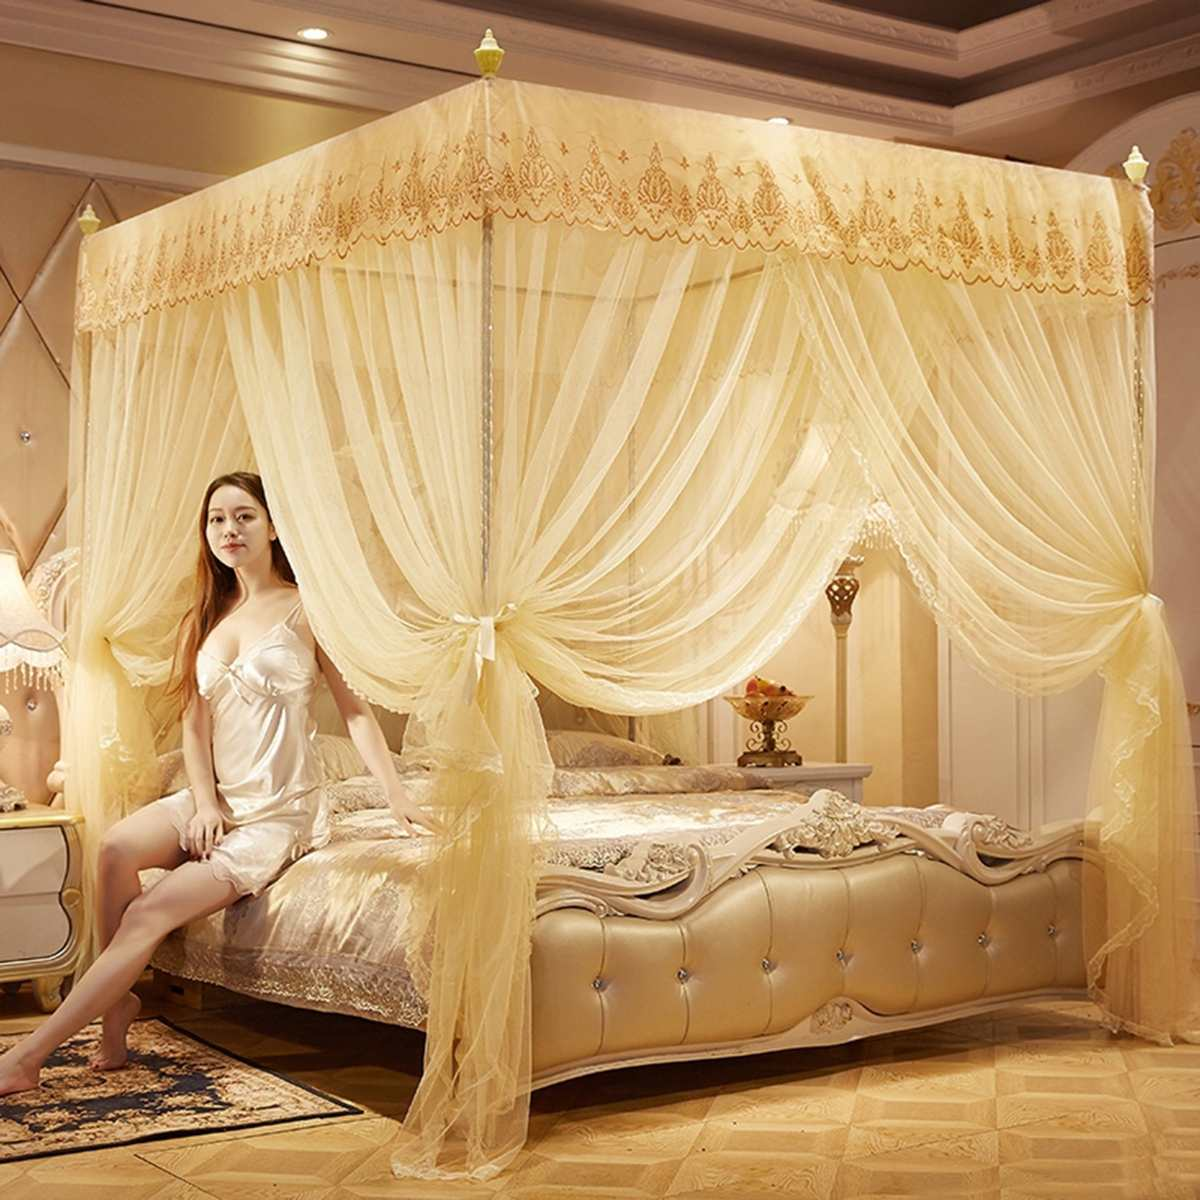 Elegant Canopy Mosquito Net For Double Bed Mosquito Repellent Tent Insect Reject Canopy Bed Curtain Bed Tent Mosquito Net Aliexpress